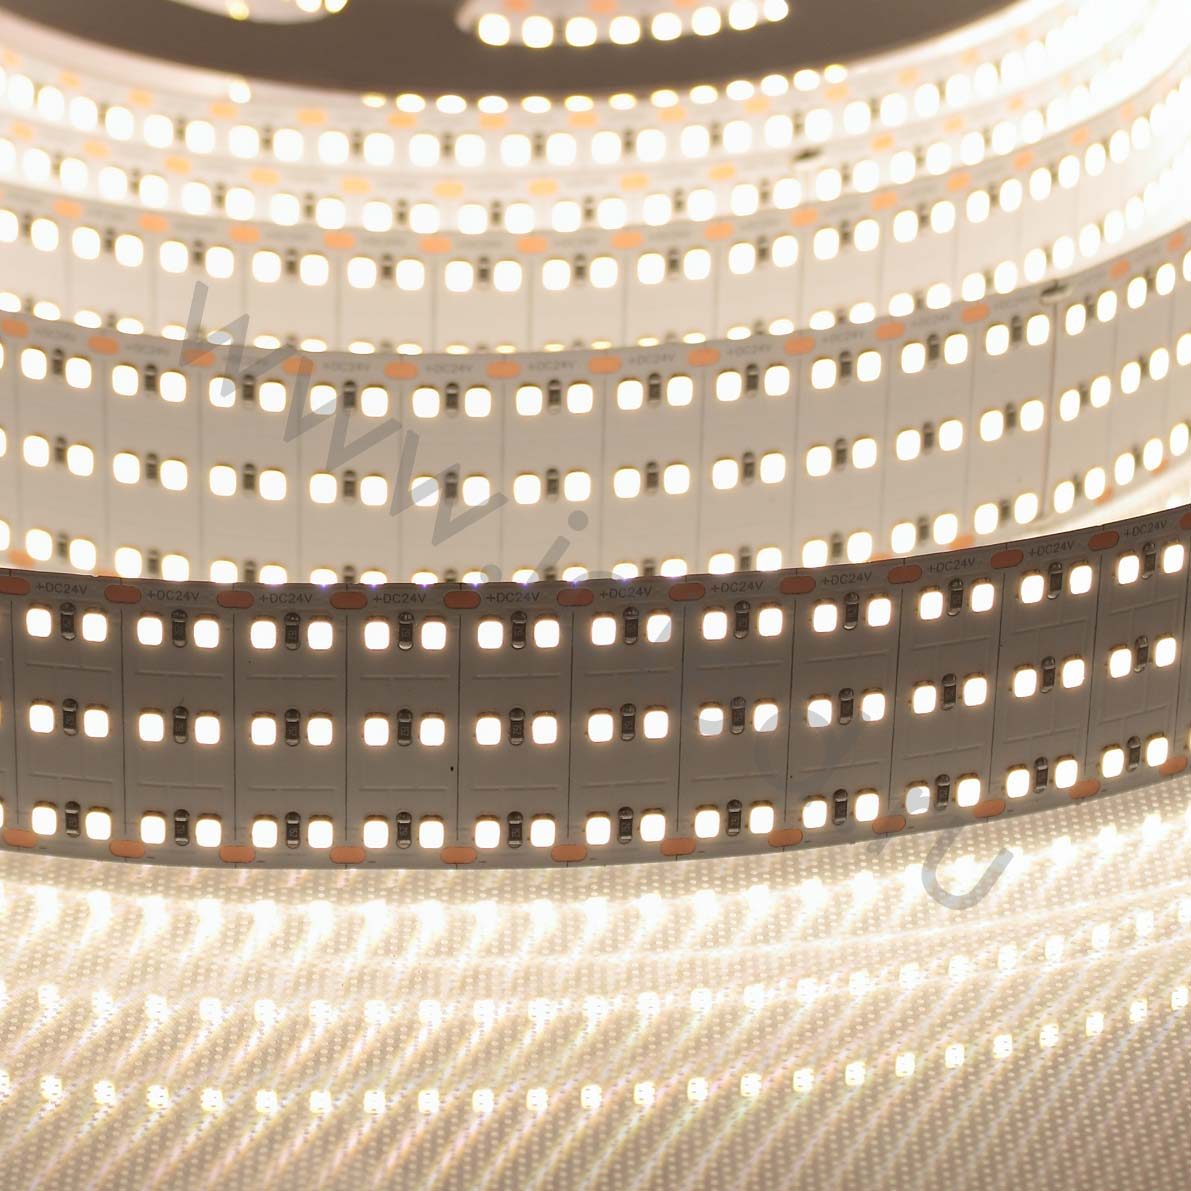 Светодиодная лента LUX class, 2835, 480led/m, day white, 24V, IP20, CRI>90, X08